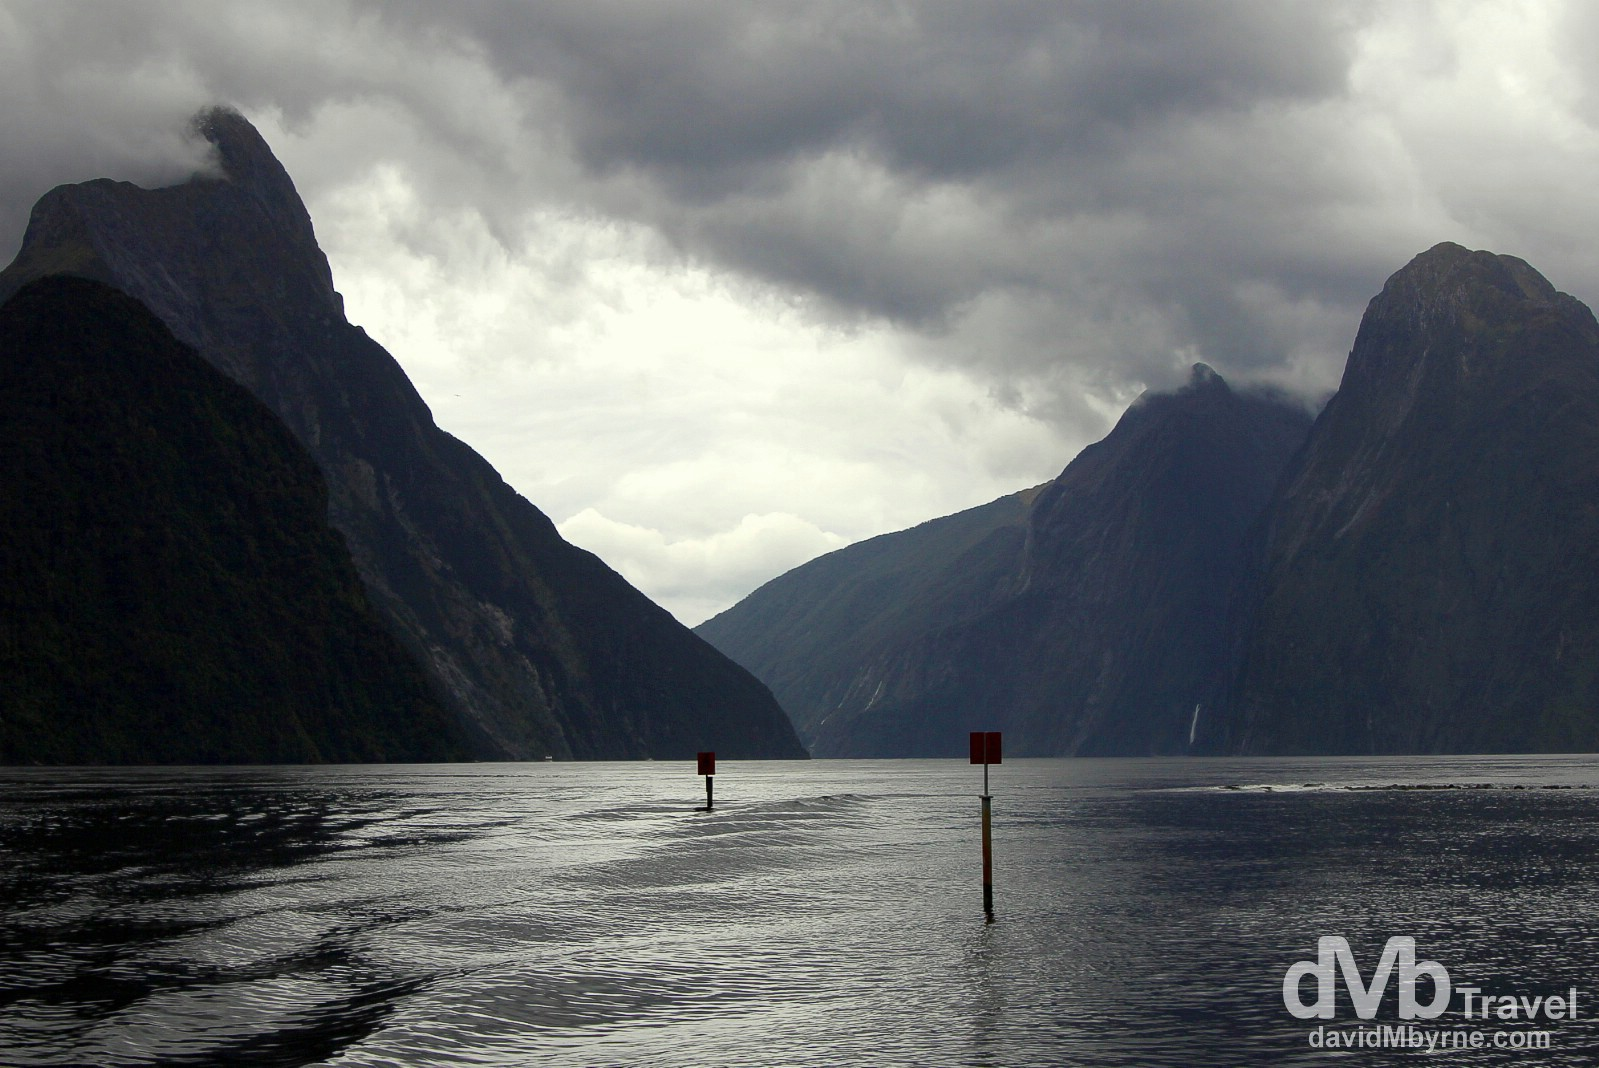 Cloud hovers over the peaks, including Mitre Peak (left), on a wet day in Milford Sound, South Island, New Zealand. May 26th 2012.